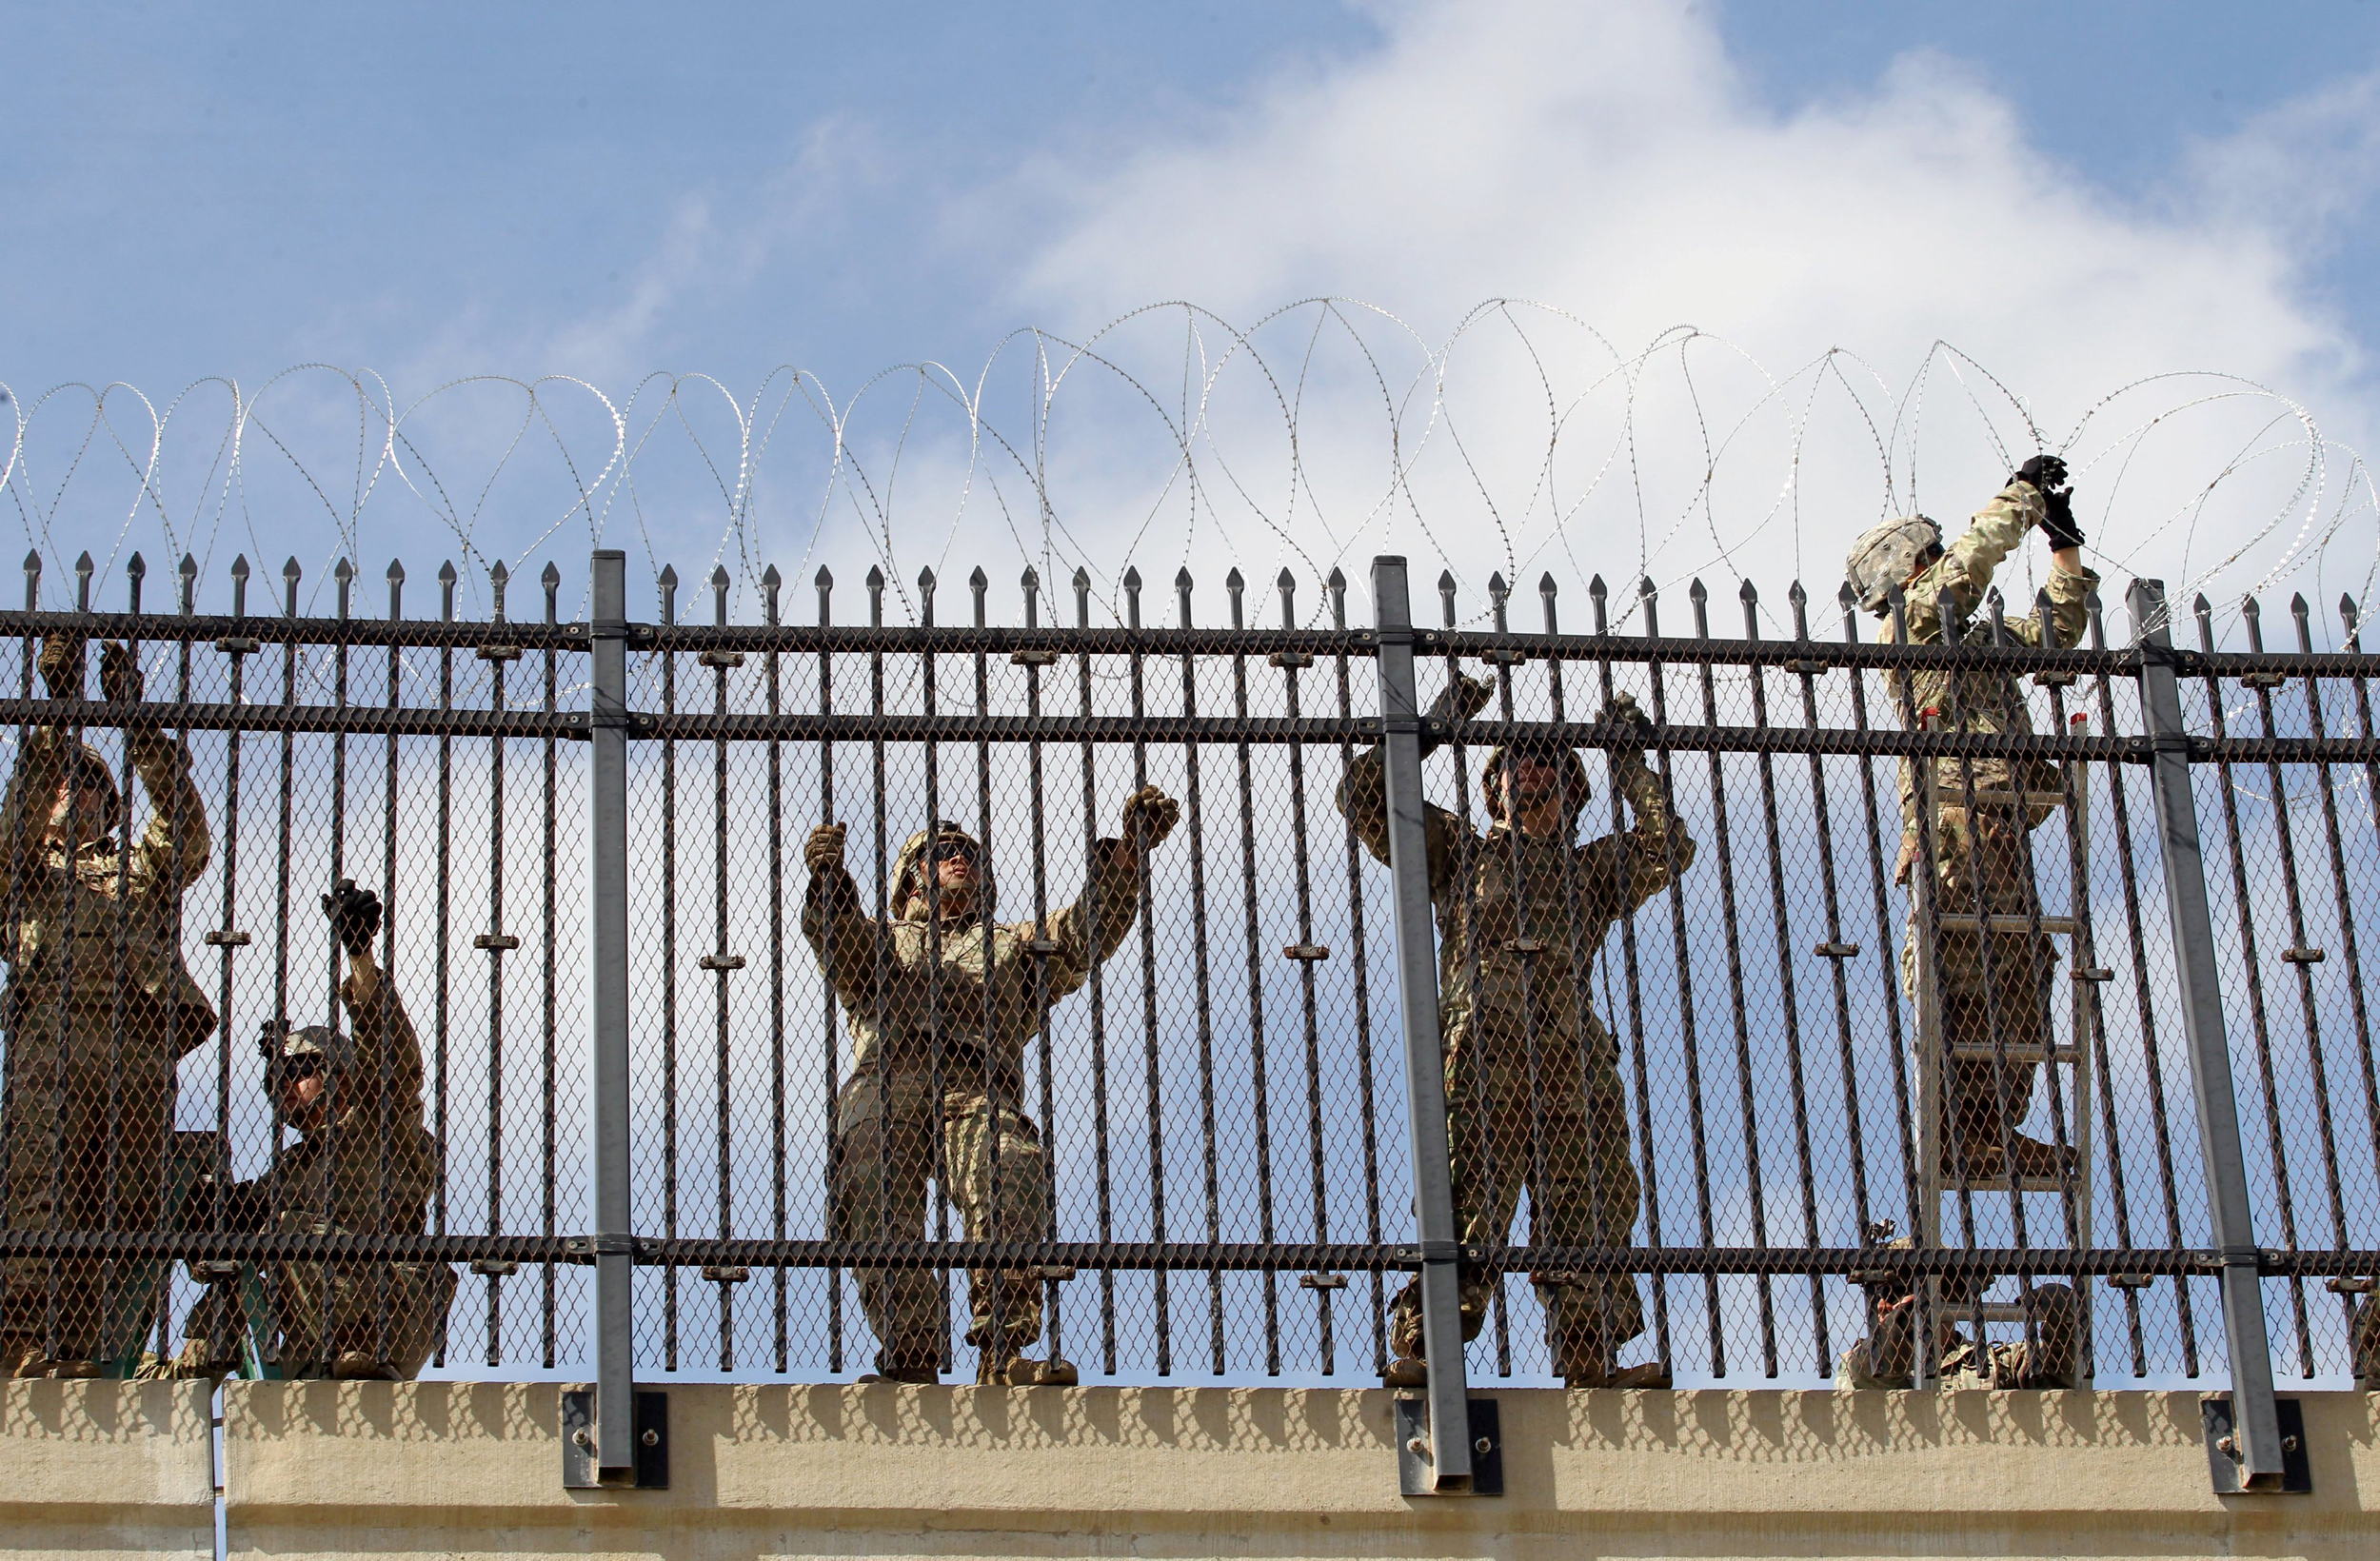 More-than-5,600-active-duty-troops-fan-out-across-southern-U.S-border